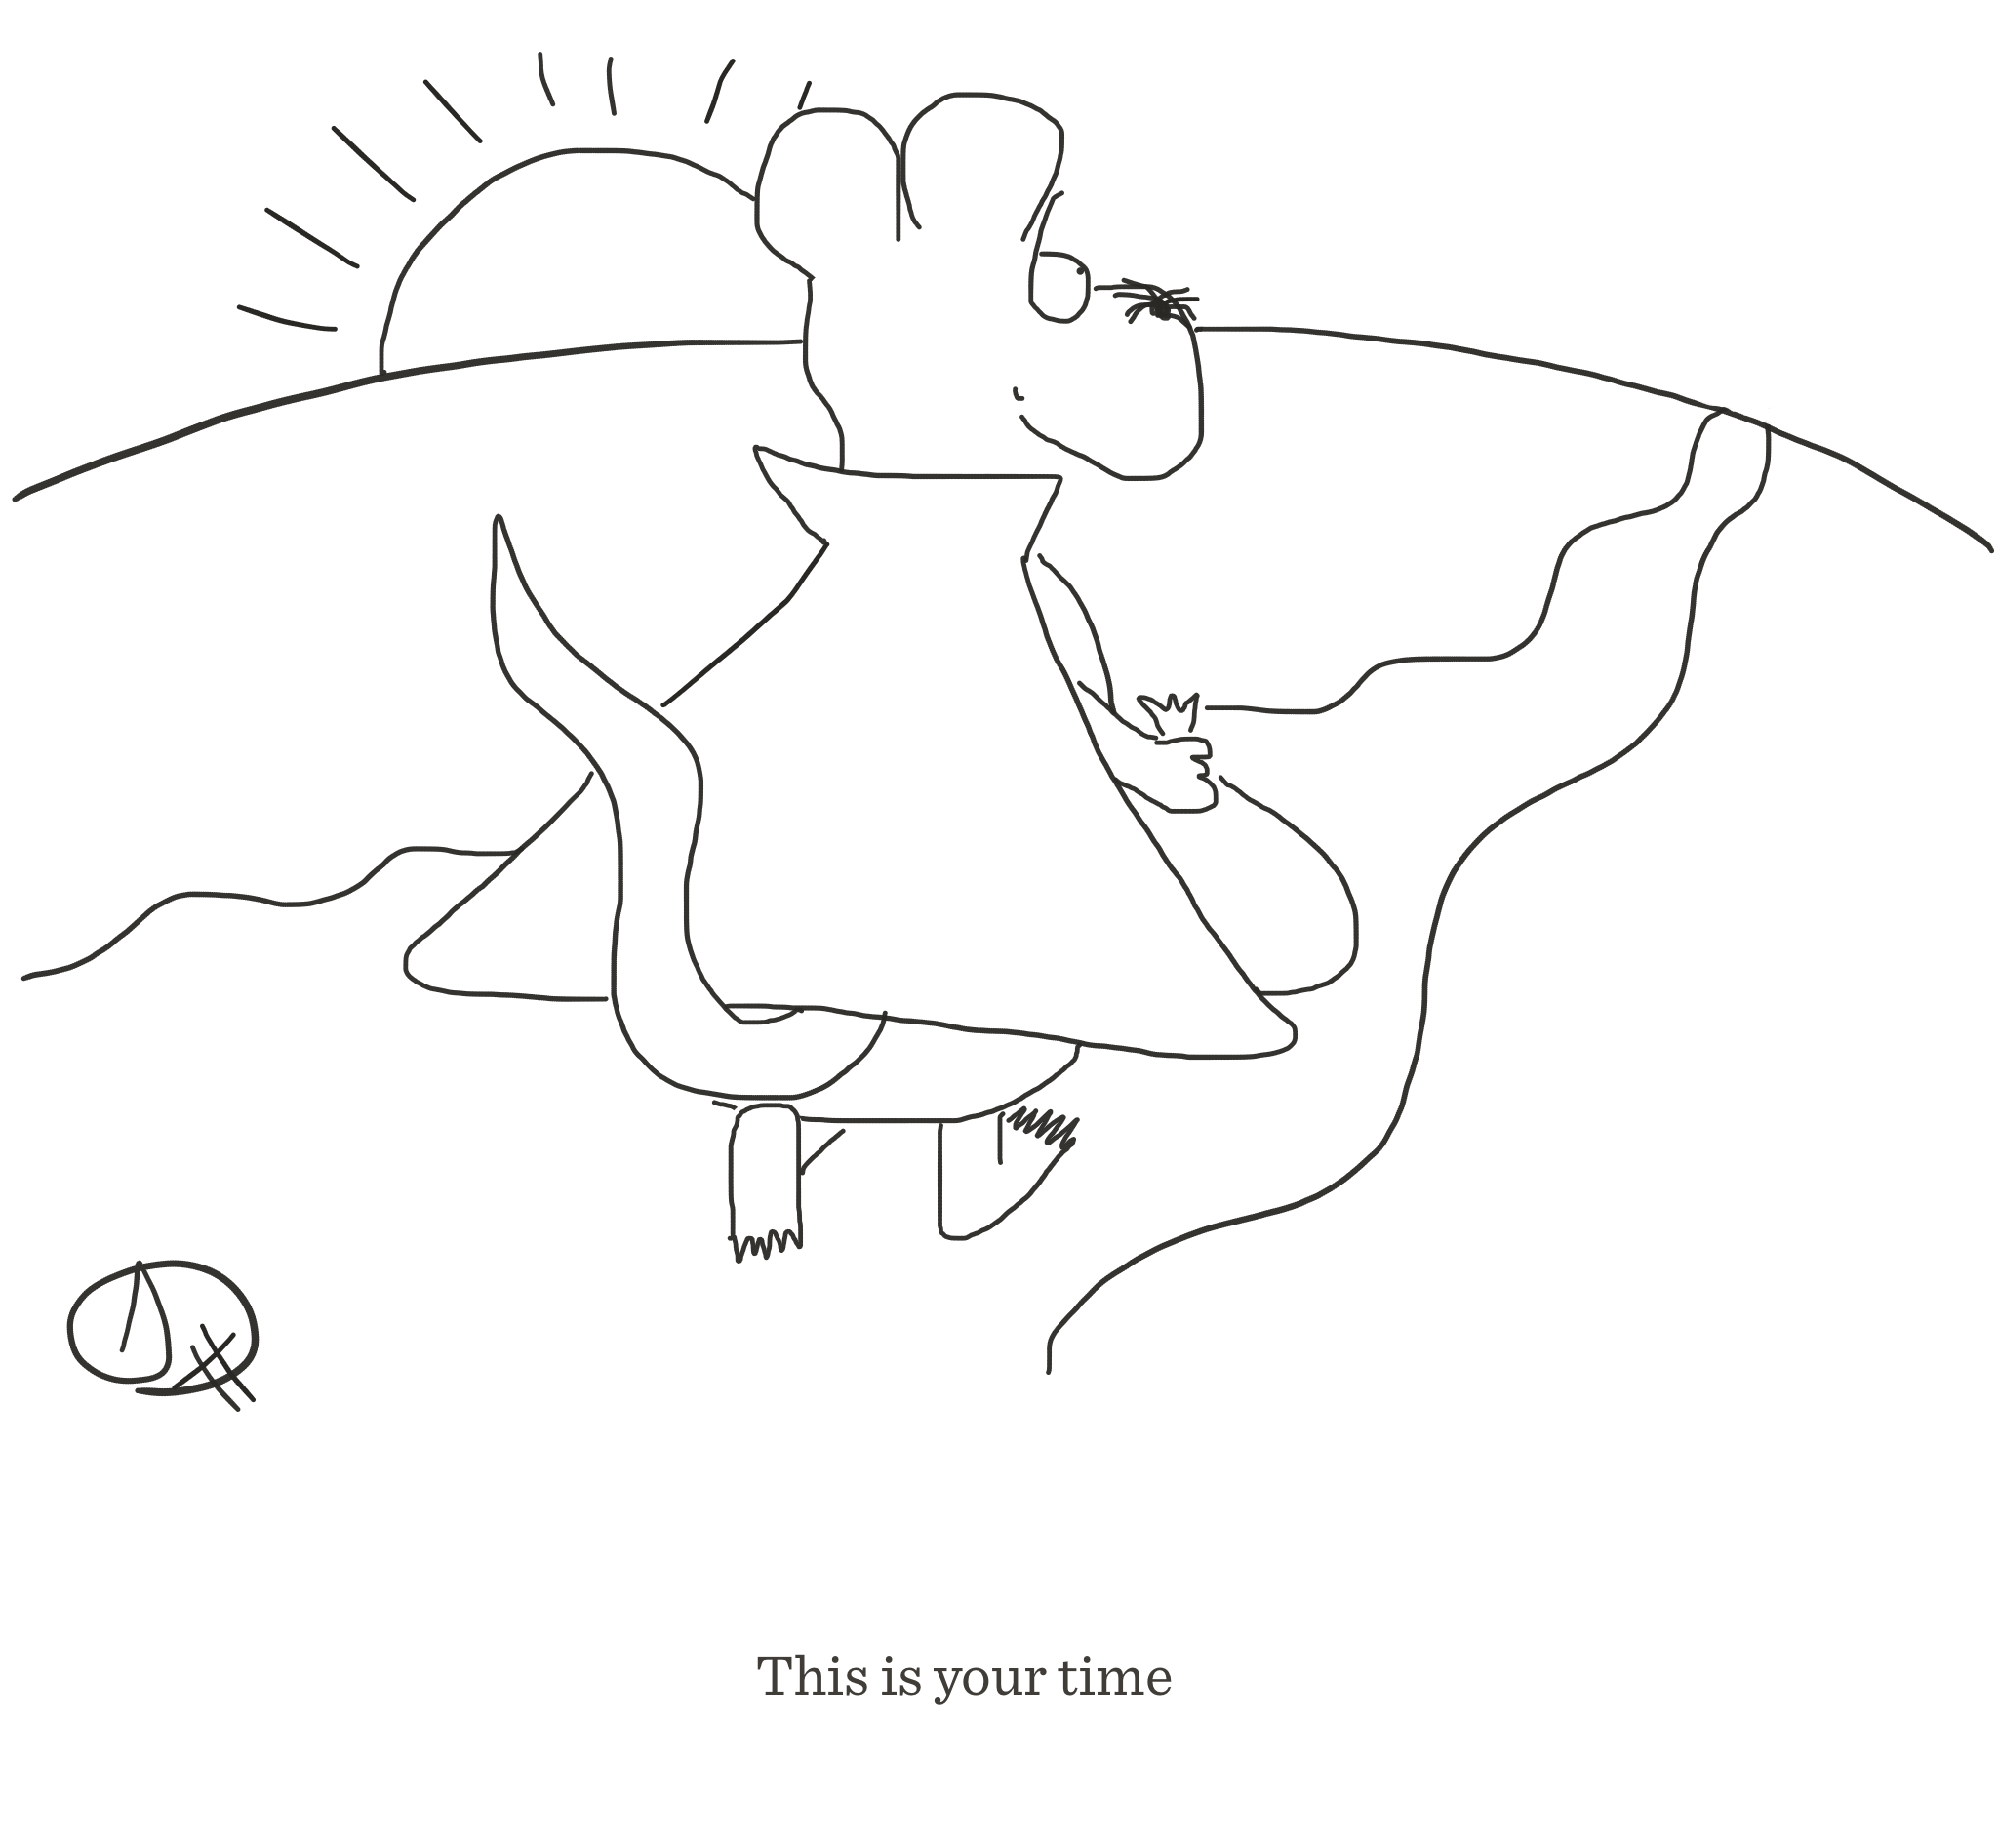 This is your time, The Happy Rat cartoon